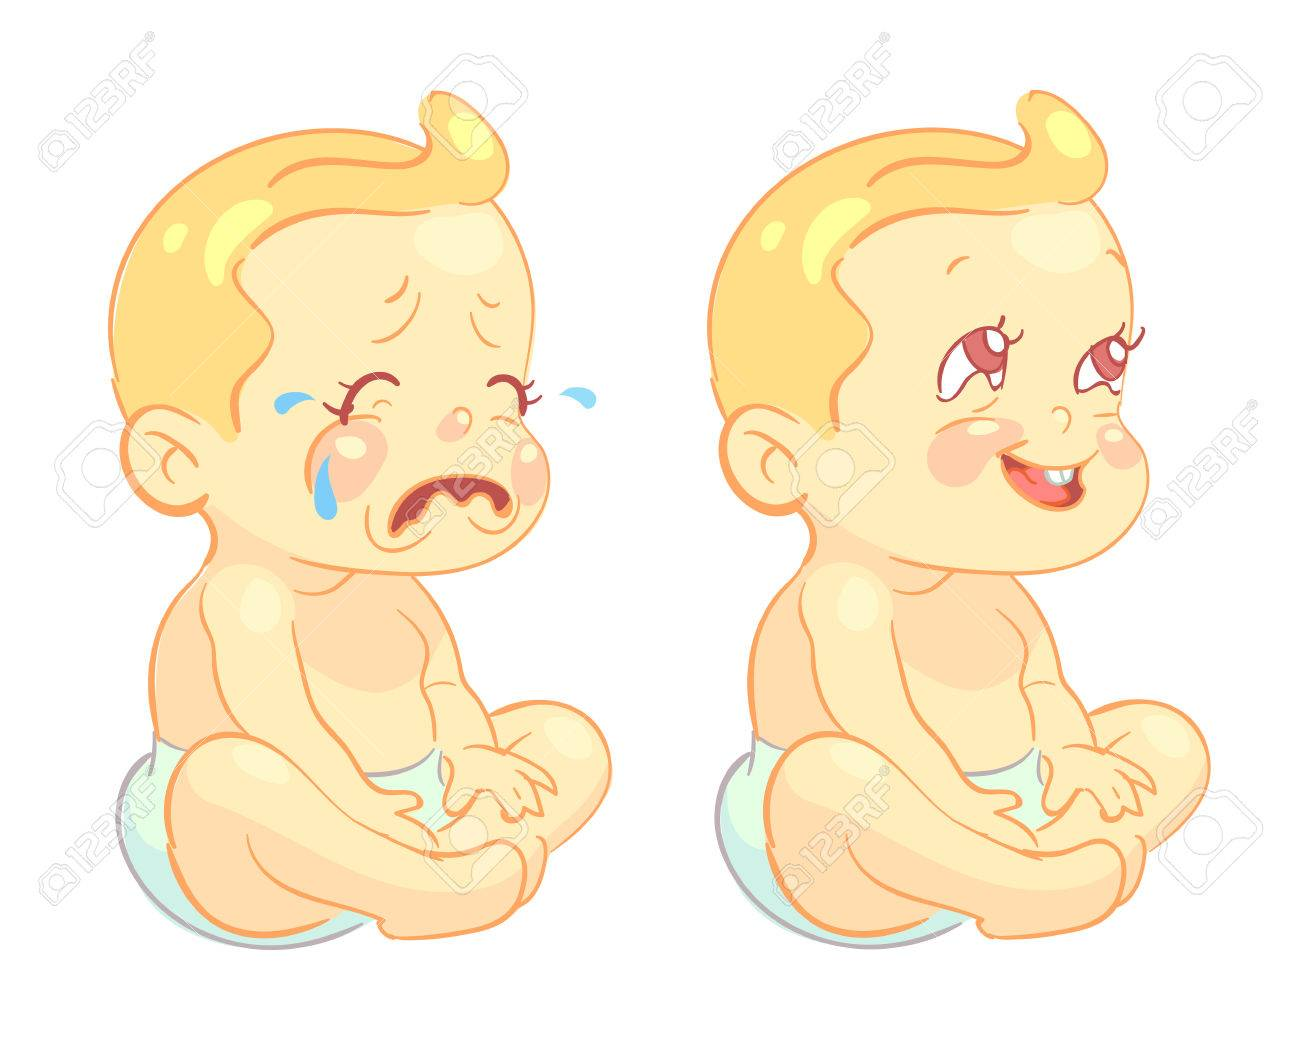 Smiling Toddler Baby And Crying Baby Vector Characters Infant - Toddler-cartoon-characters